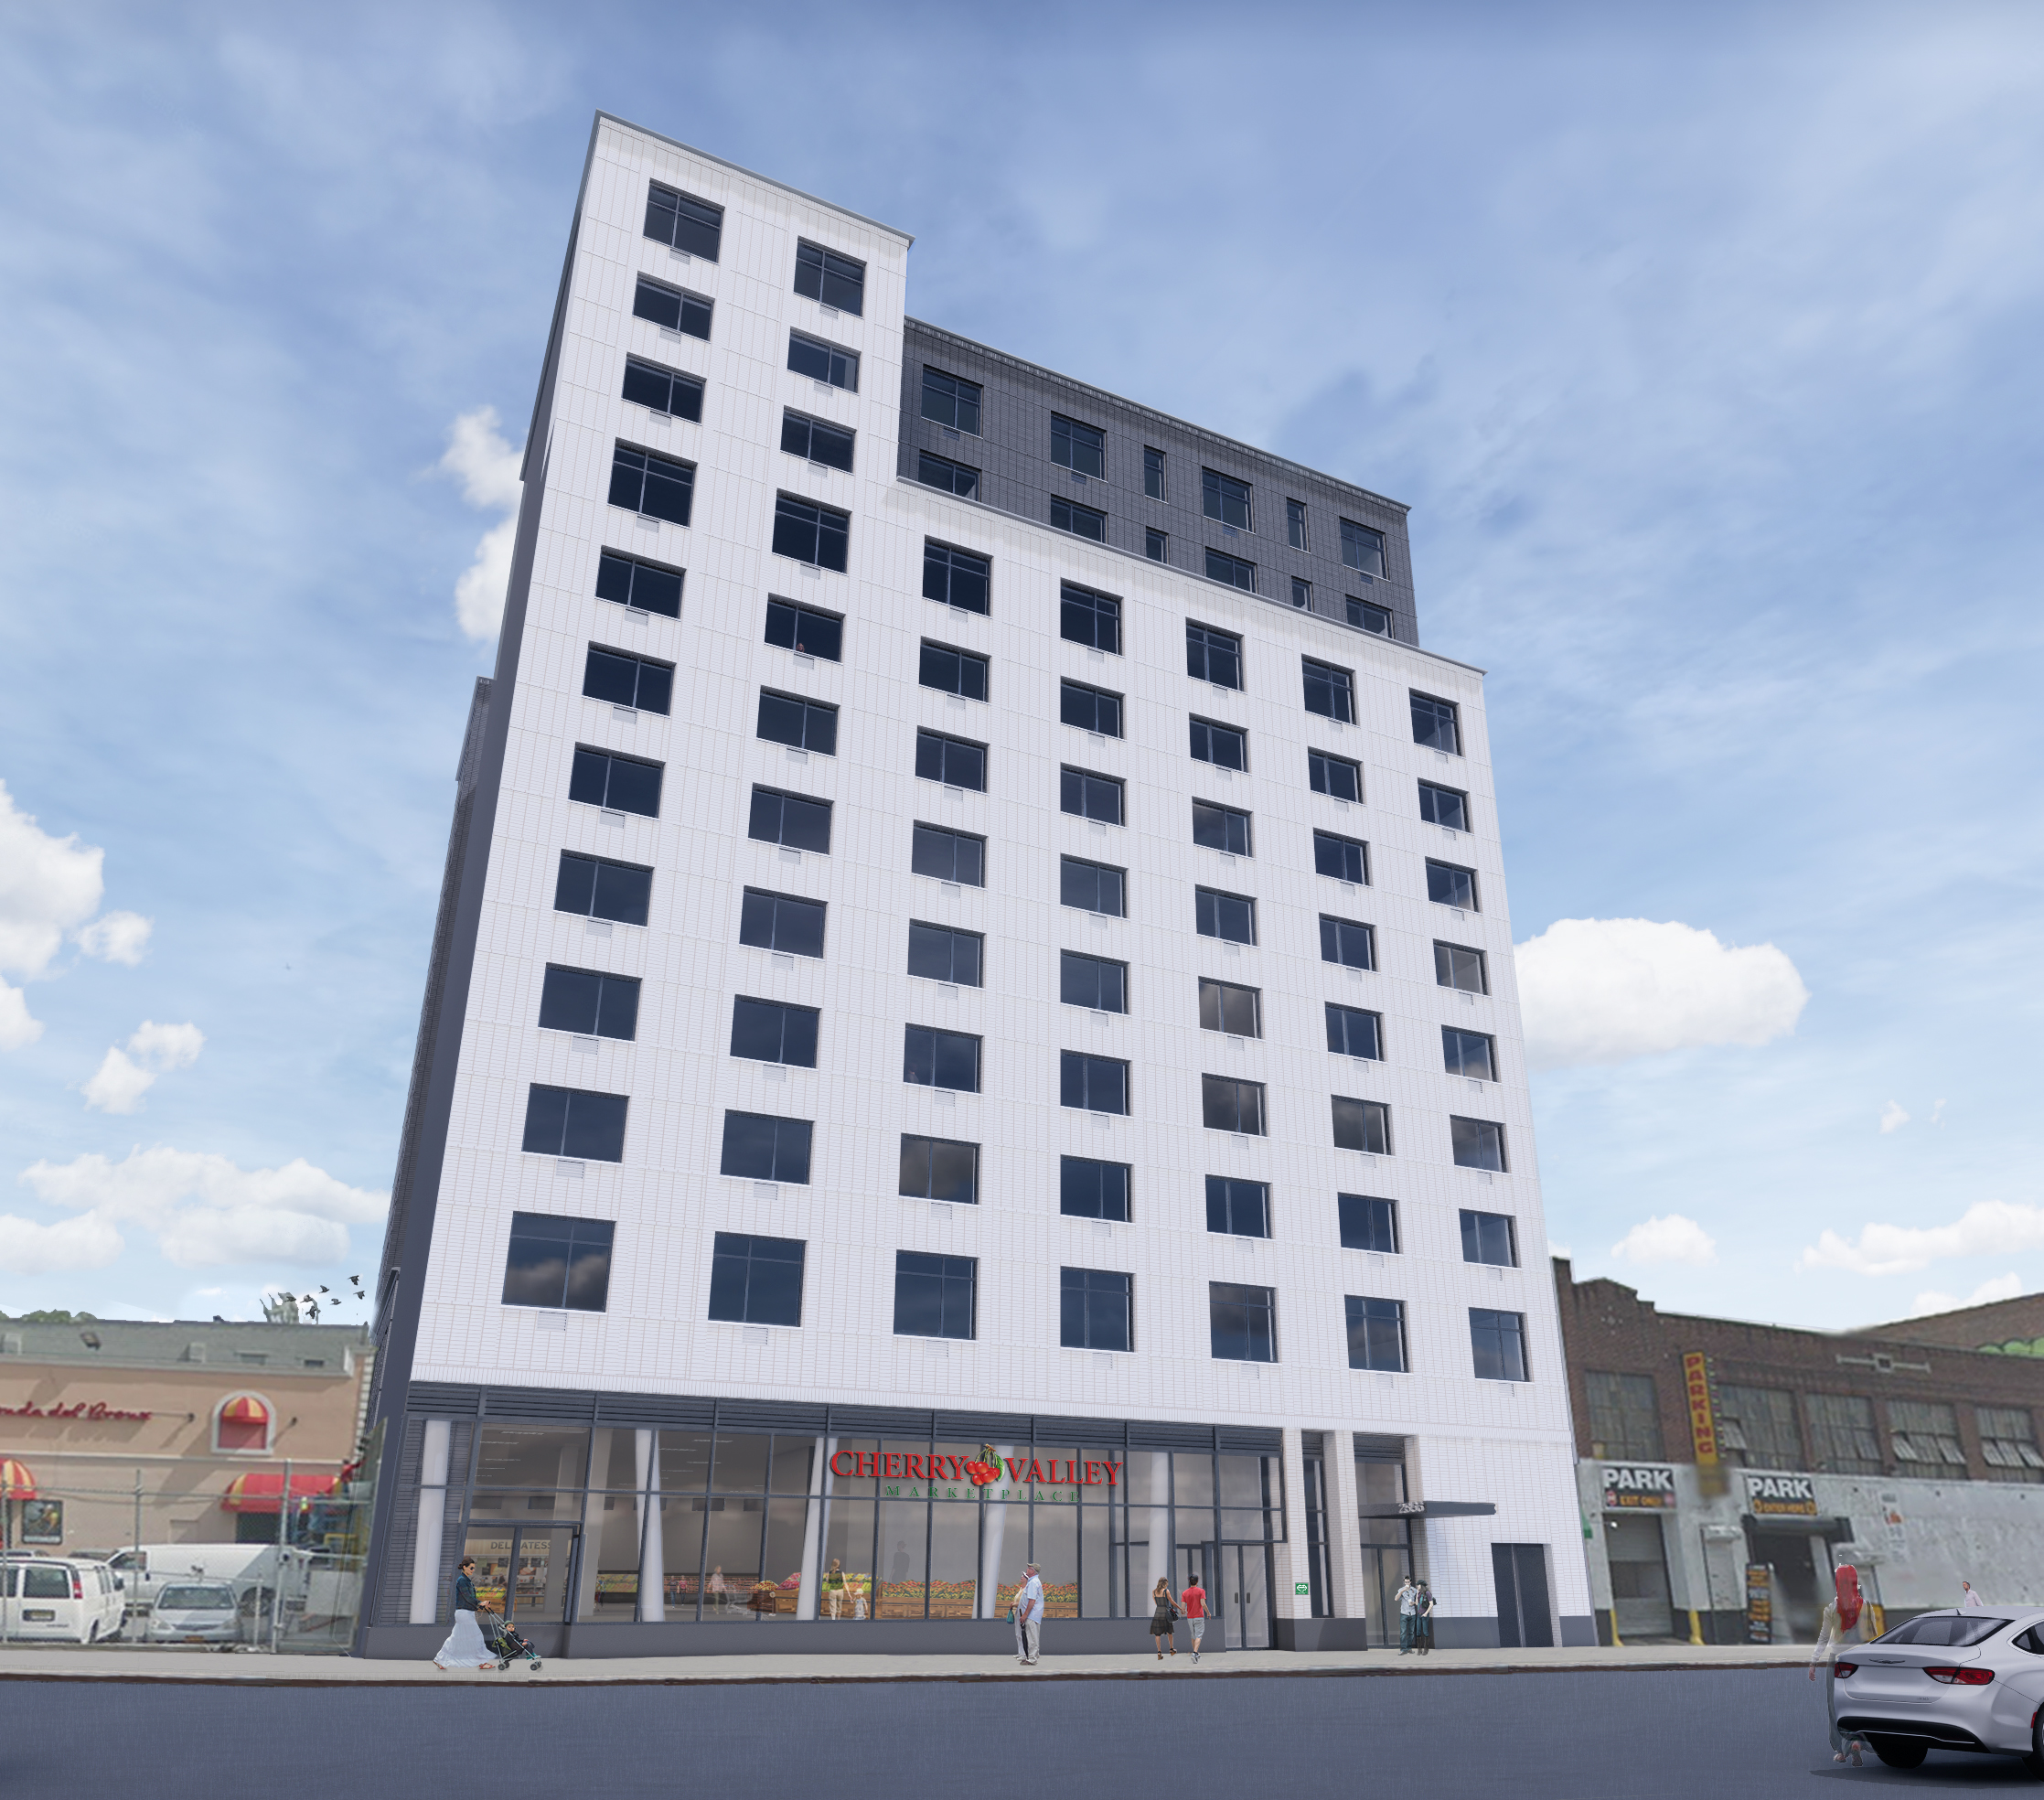 A $93.5 Million Mixed-Use Affordable Senior Housing Development IsComing To The Bronx